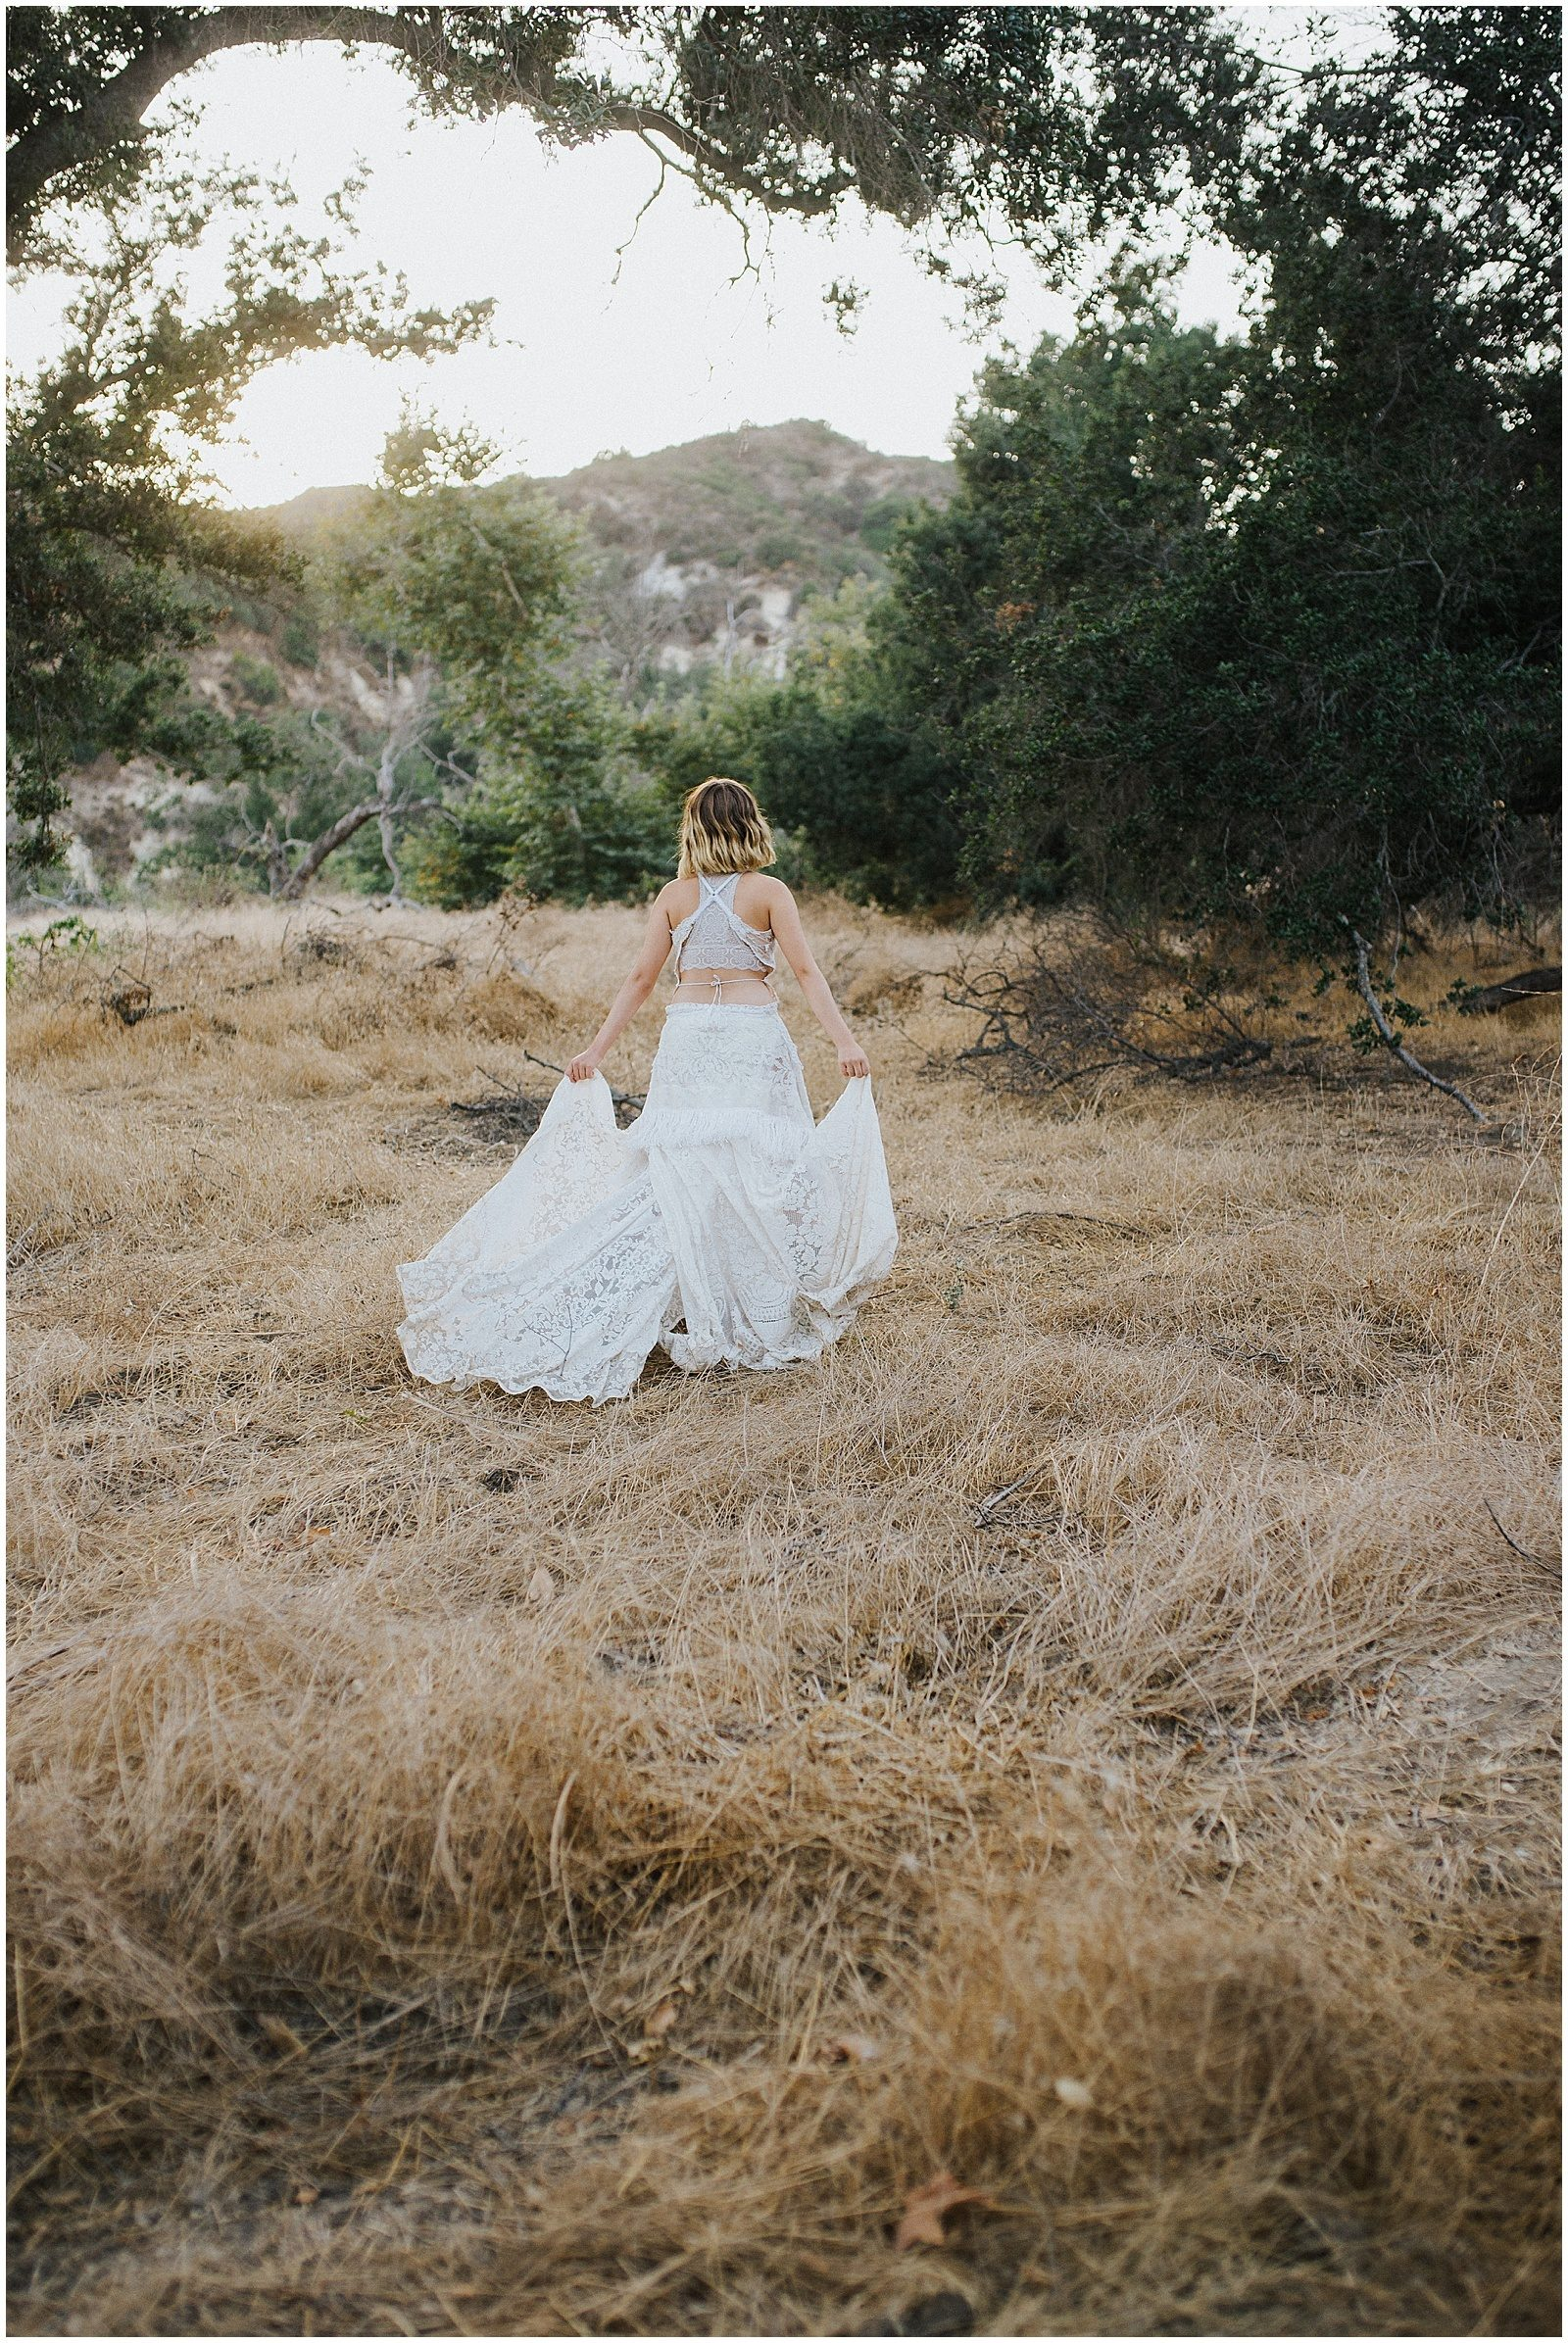 Orange County Family Photographer Travelling Reclamation Dress 0266